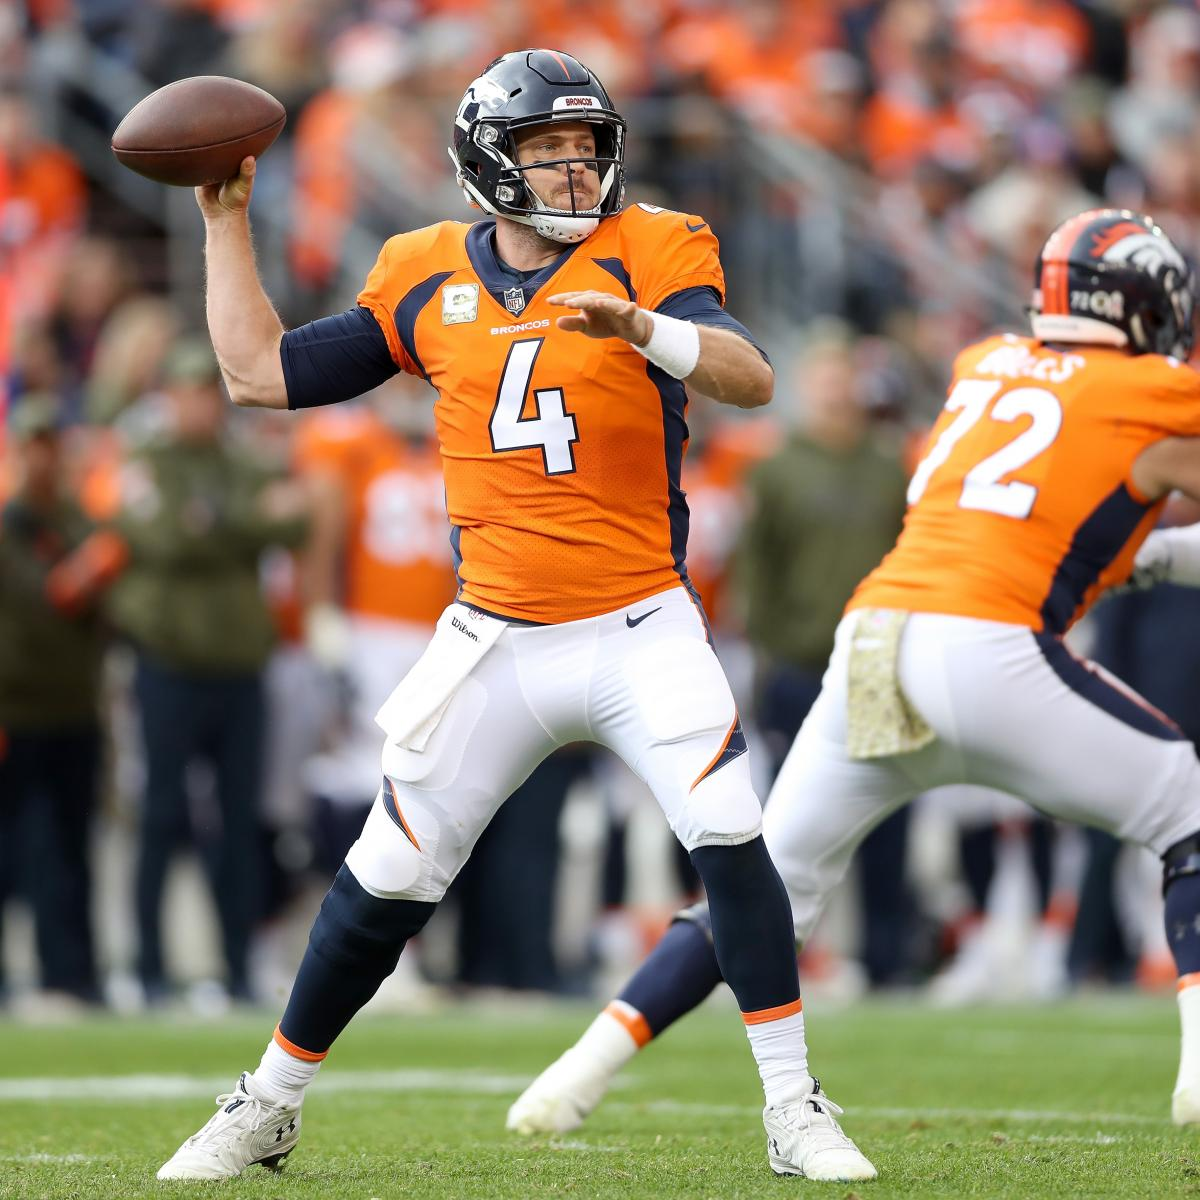 Denver Broncos Vs. Los Angeles Chargers: Odds, Analysis